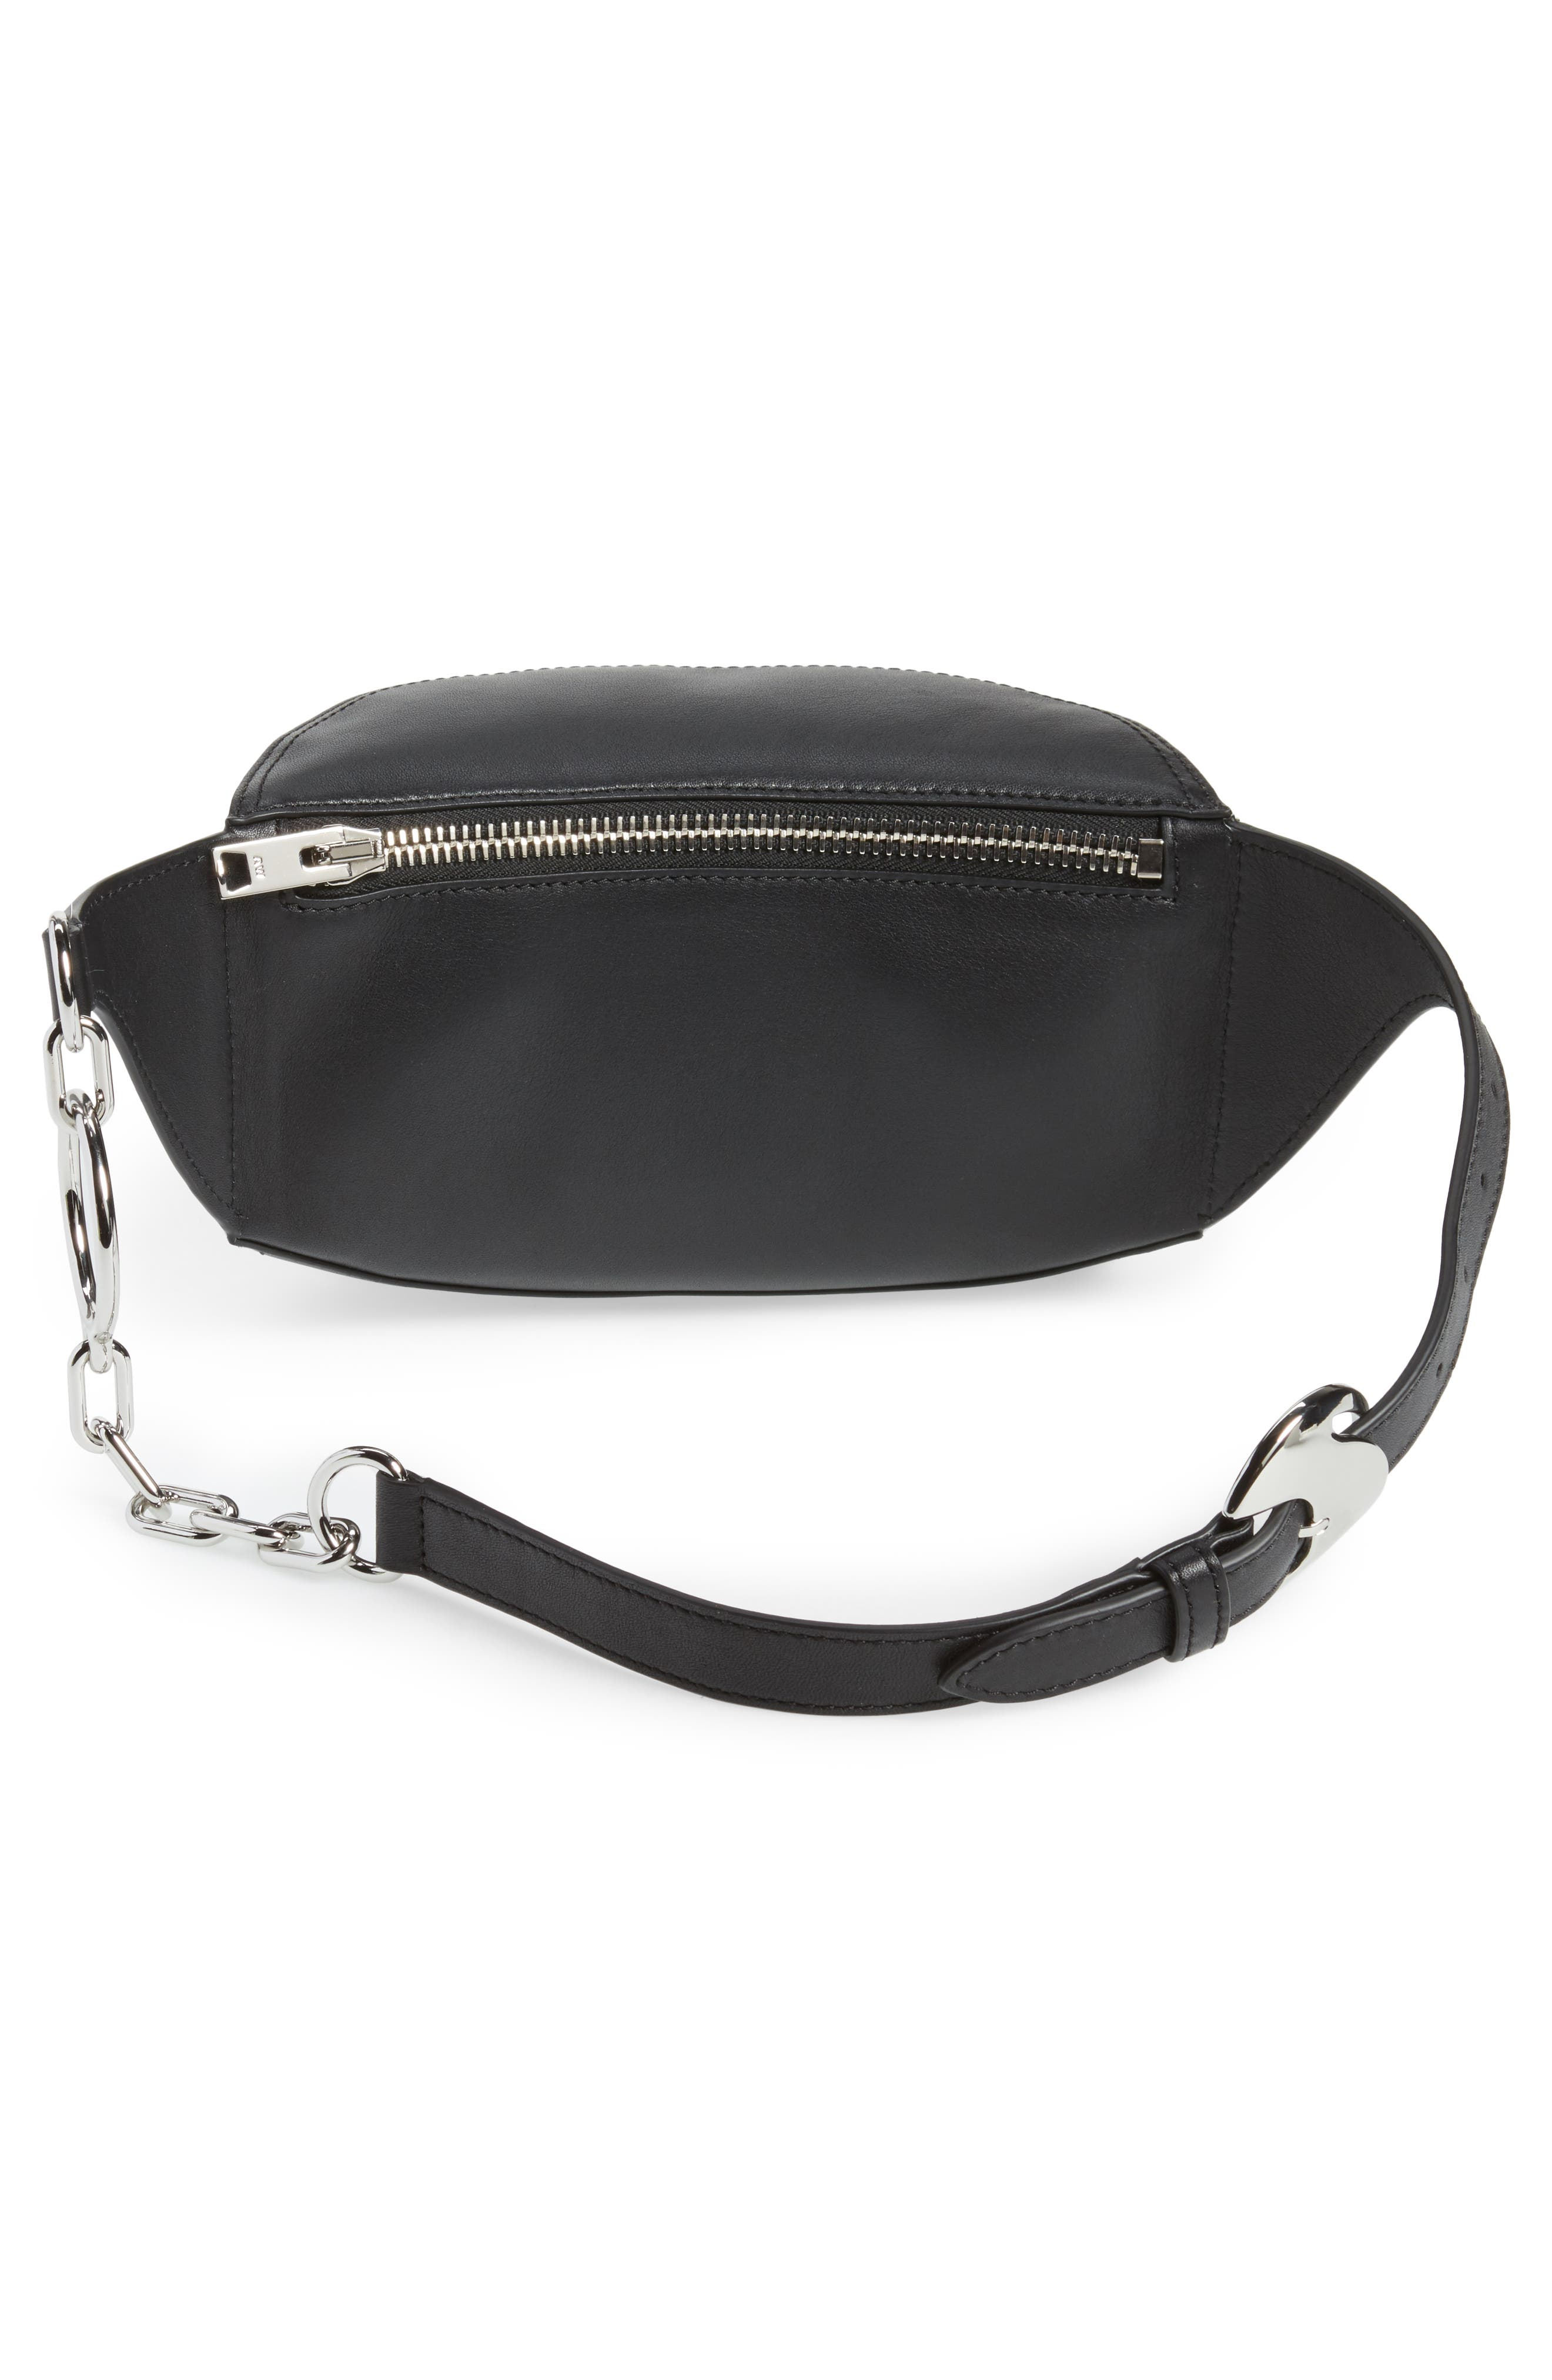 Leather Fanny Pack,                             Alternate thumbnail 4, color,                             001